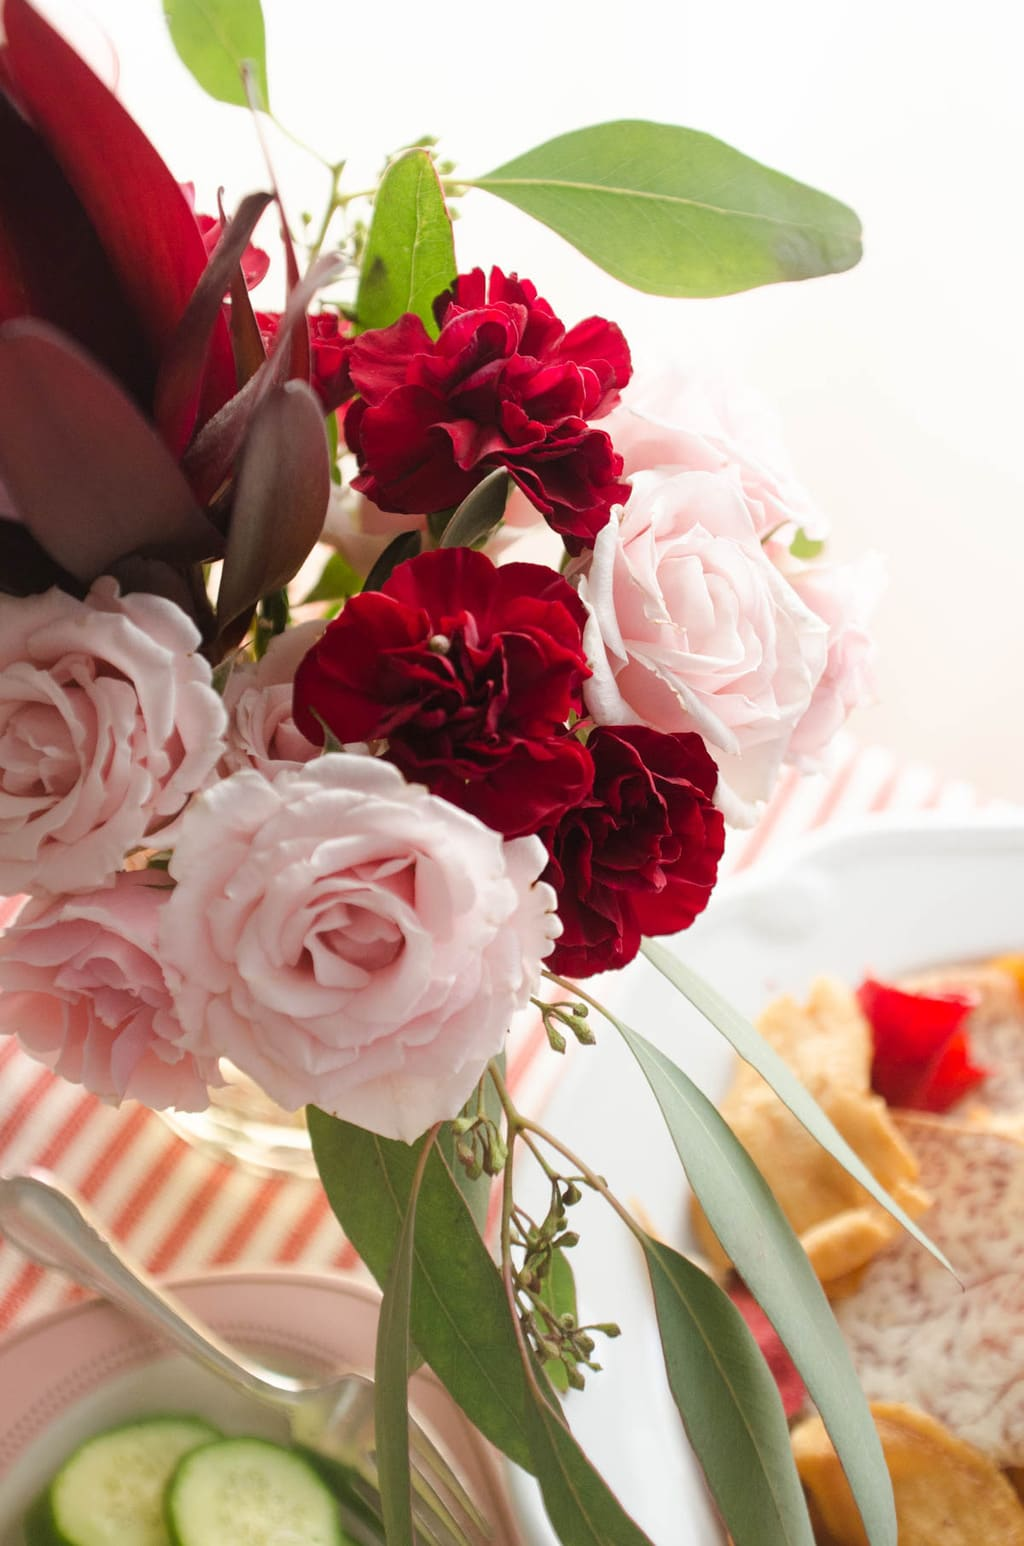 Valentine's Day flower arrangement via @thouswellblog